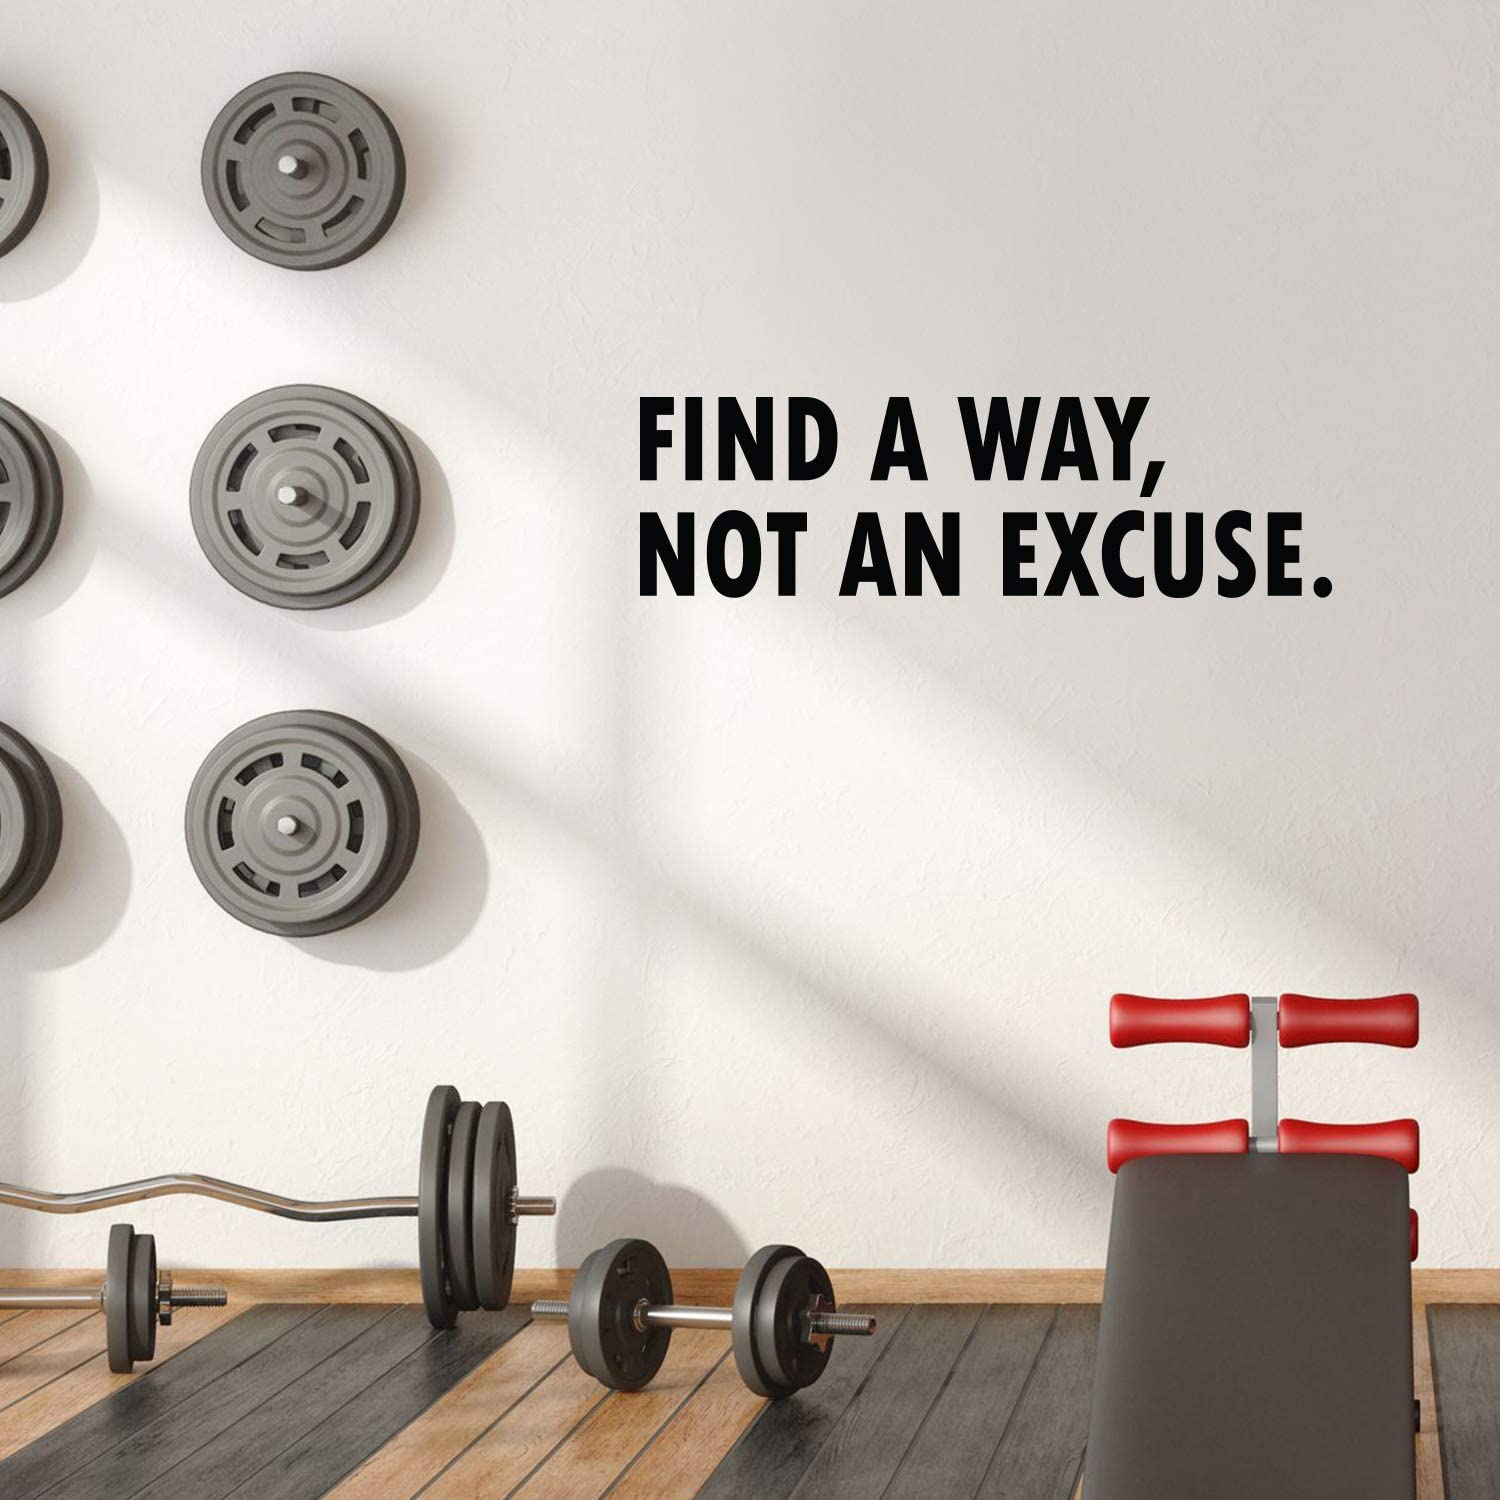 Vinyl Wall Art Decal - Find a Way Not an Excuse Motivational Quote - 11